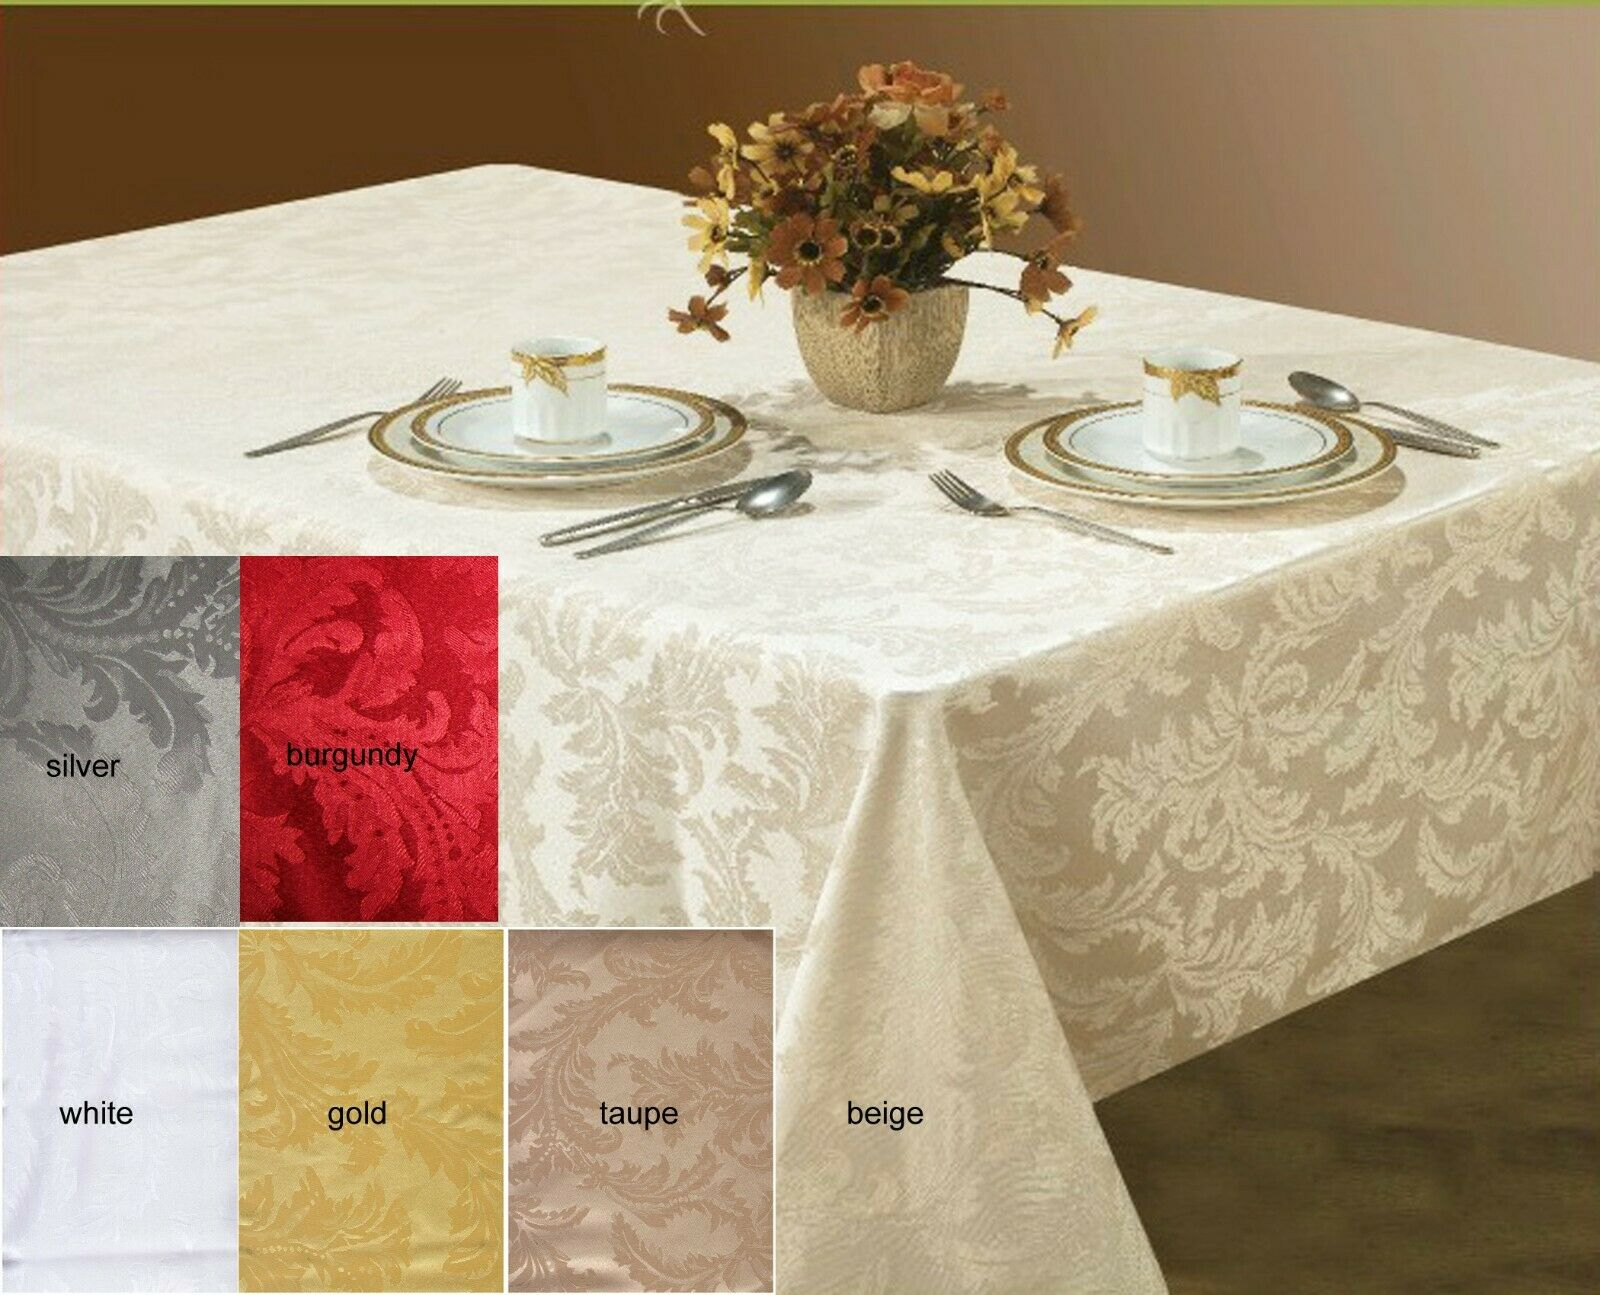 New High Quality Water Repellent U0026 Stain Resistant Tablecloths U0026 Napkins 5  Color 1 Of 6FREE Shipping See More